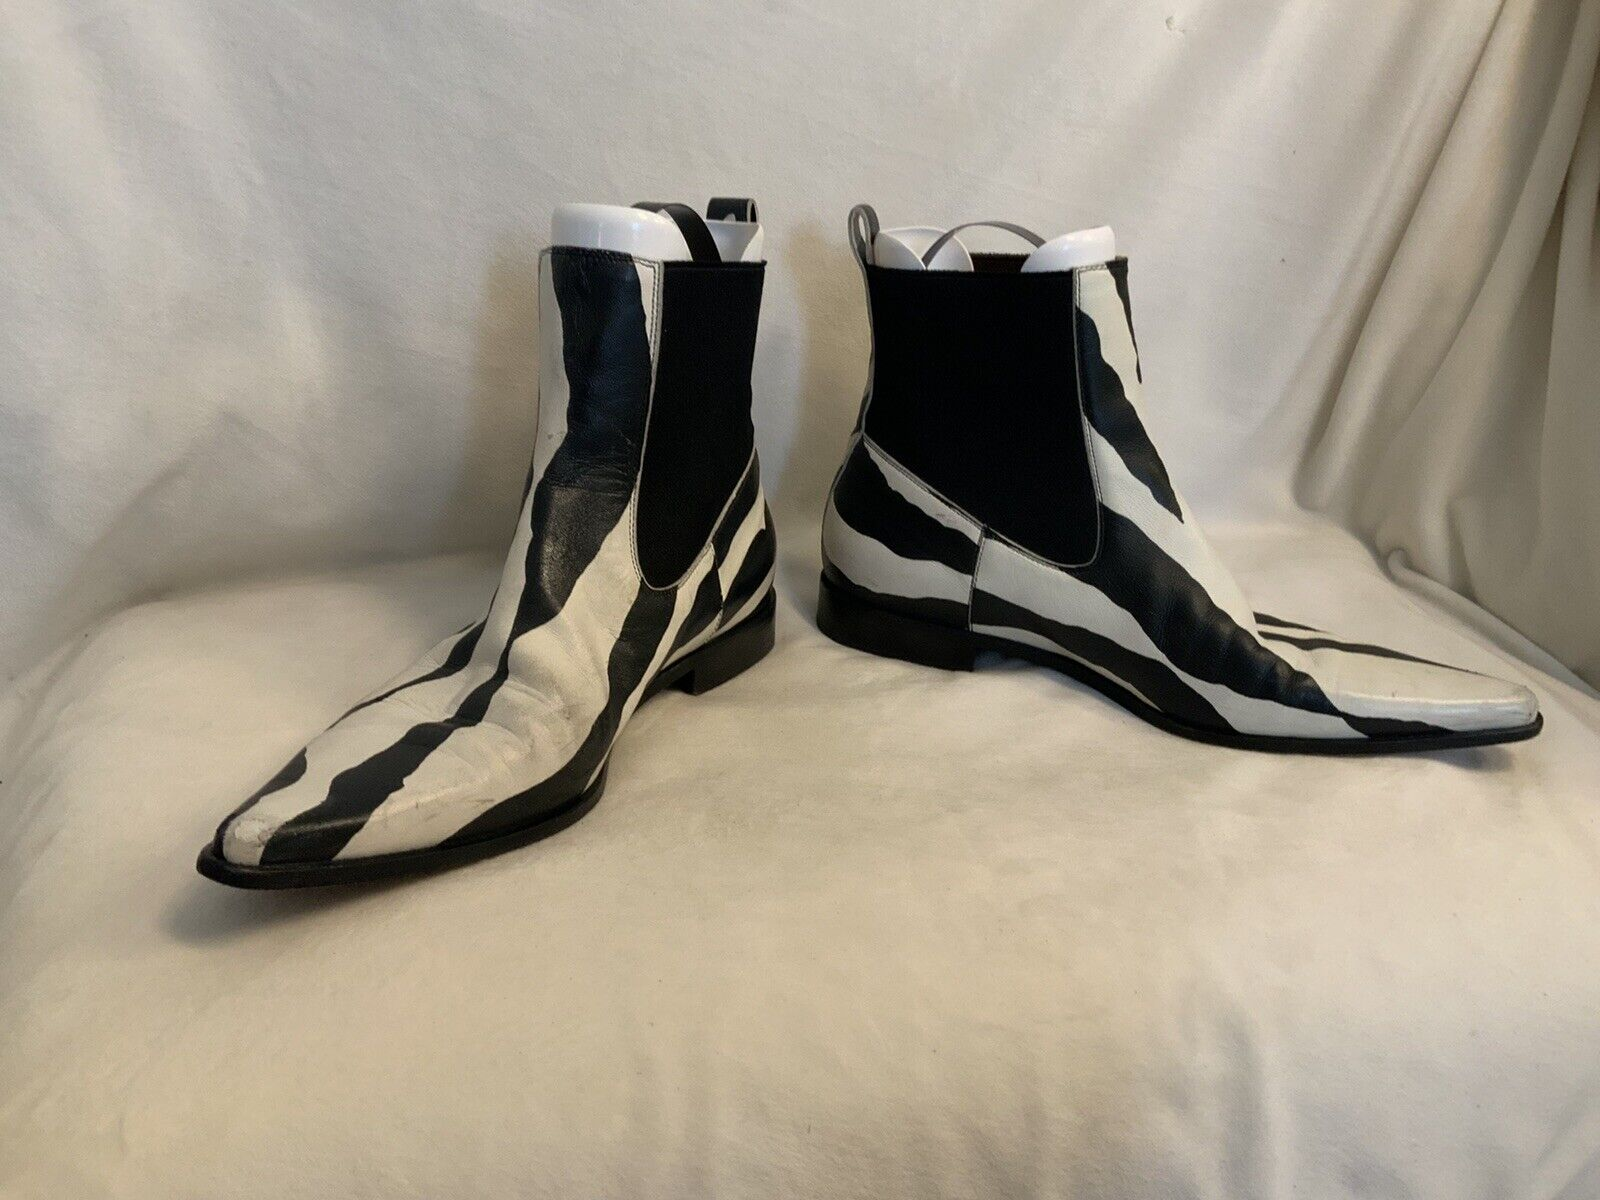 Dolce And Gabbana Ankle Boots Zebra Print Leather  - image 2